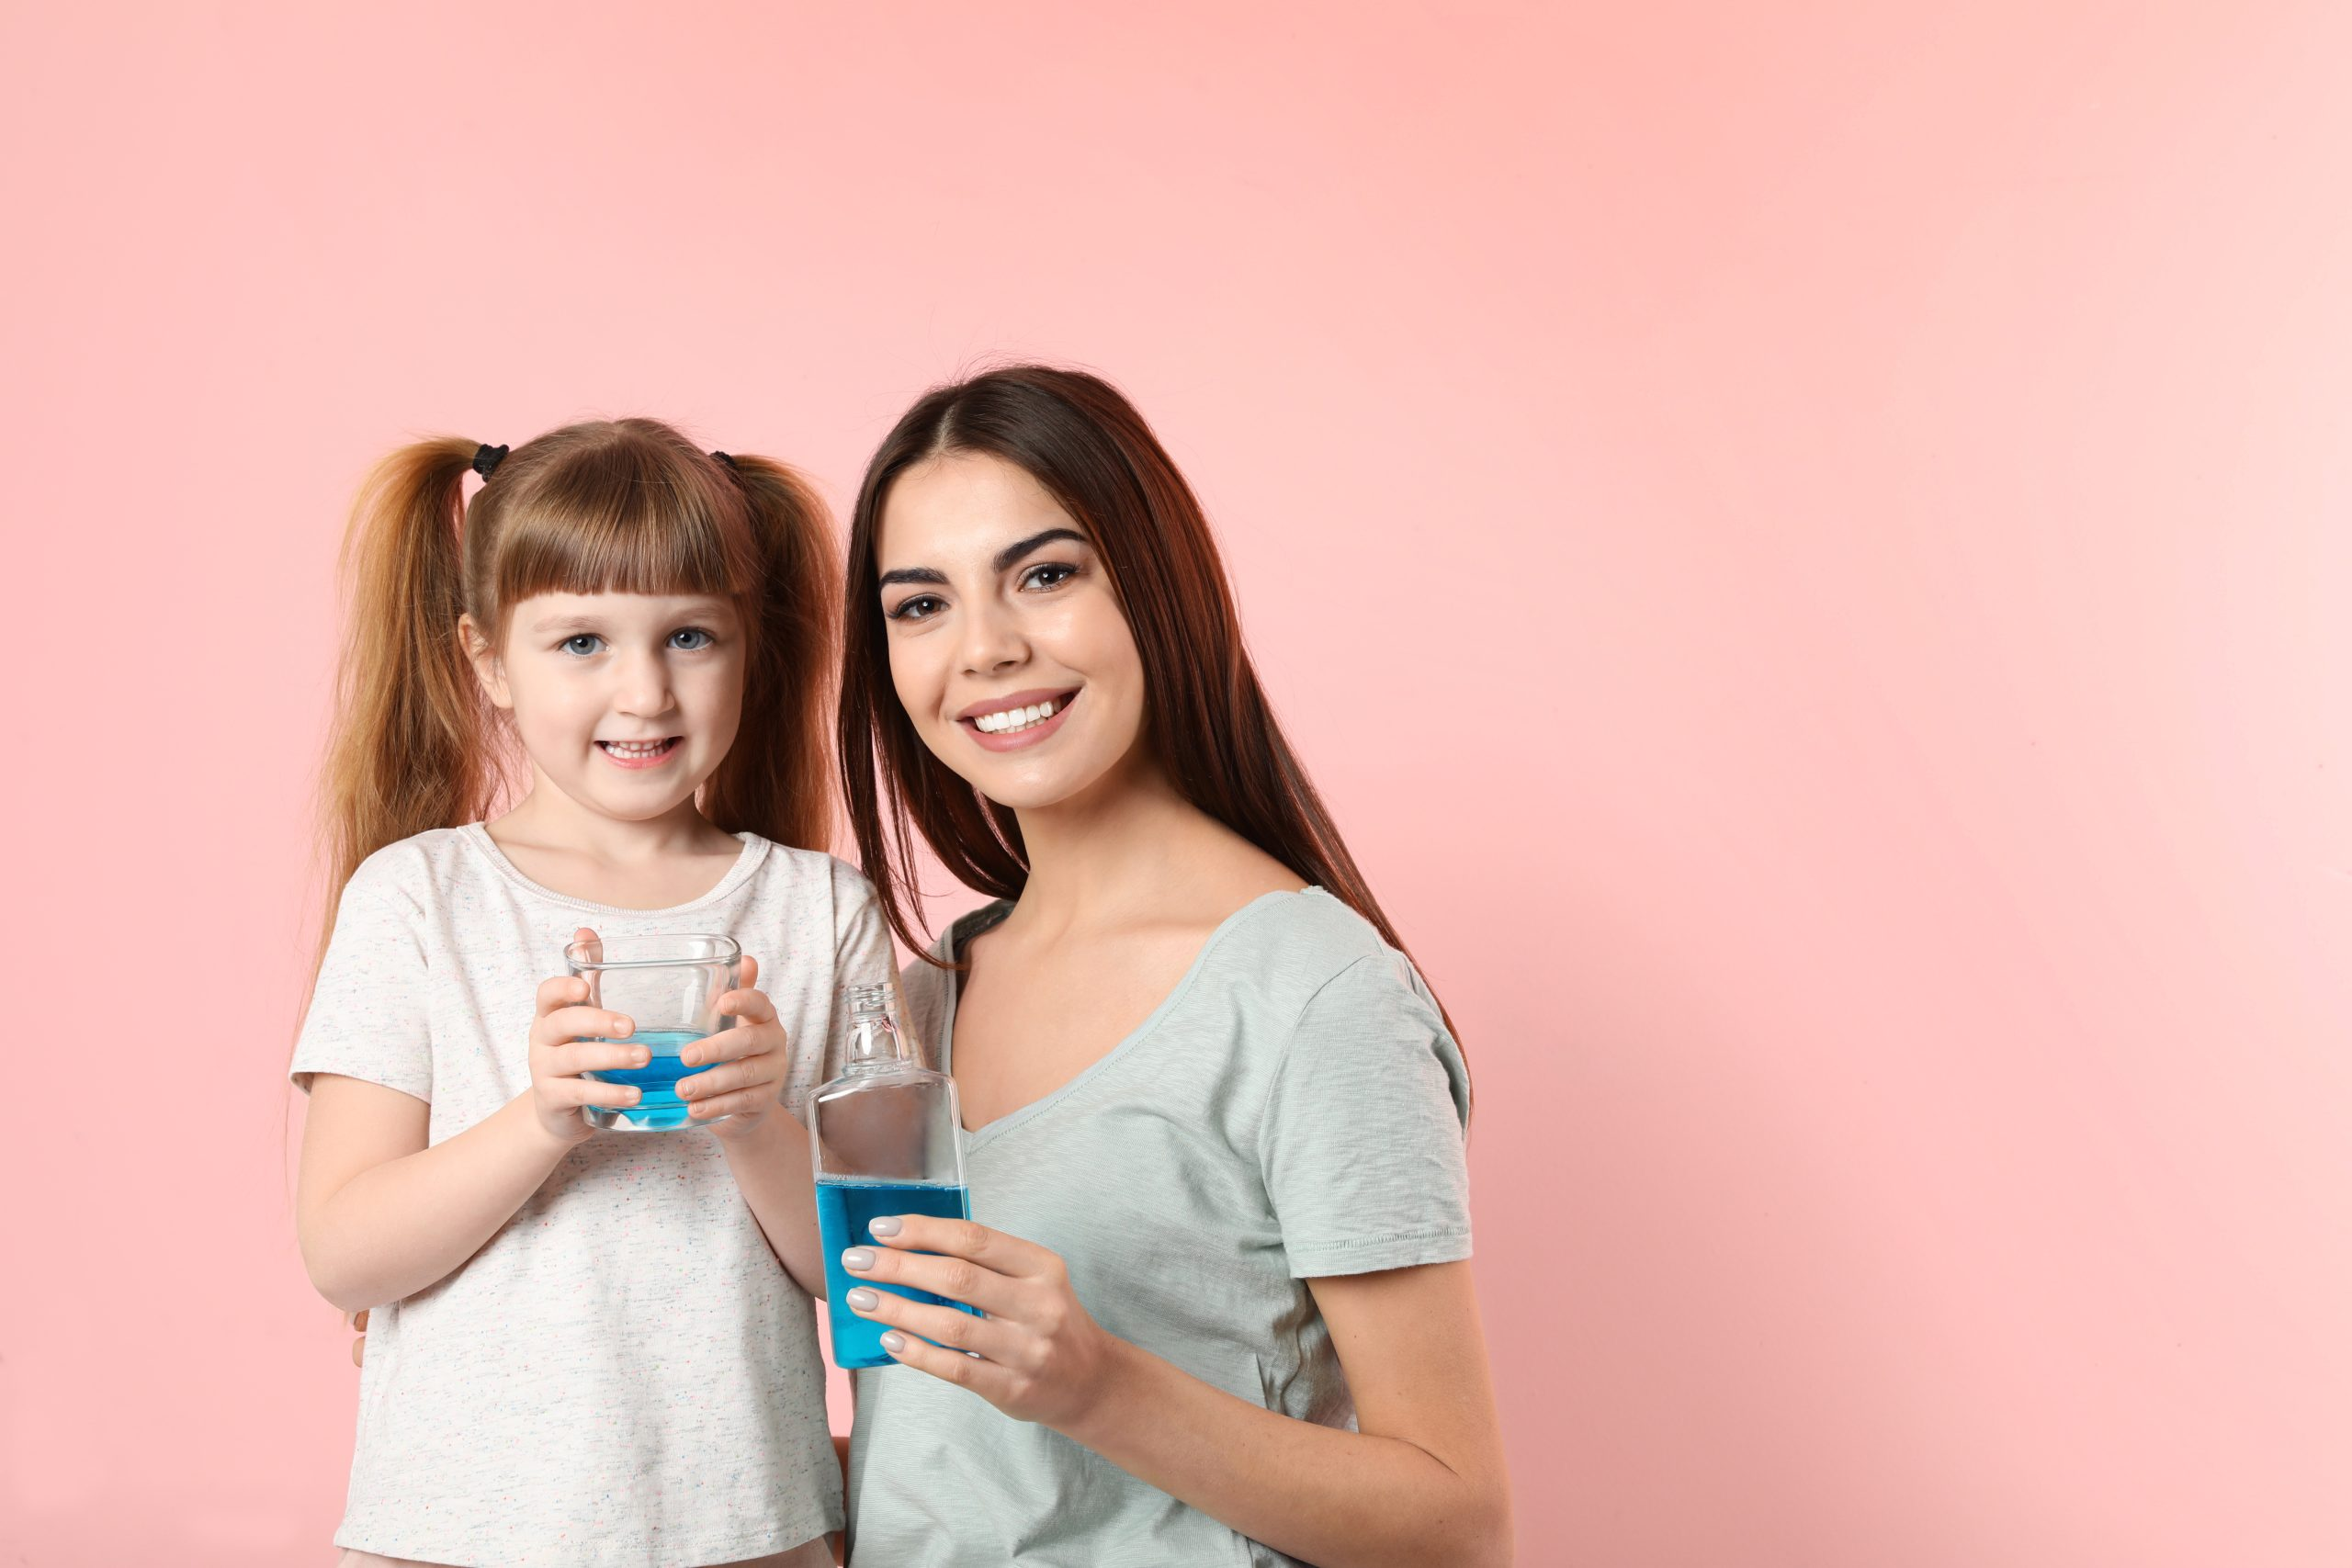 Little girl and her mother with mouthwash on color background, space for text. Teeth and oral care